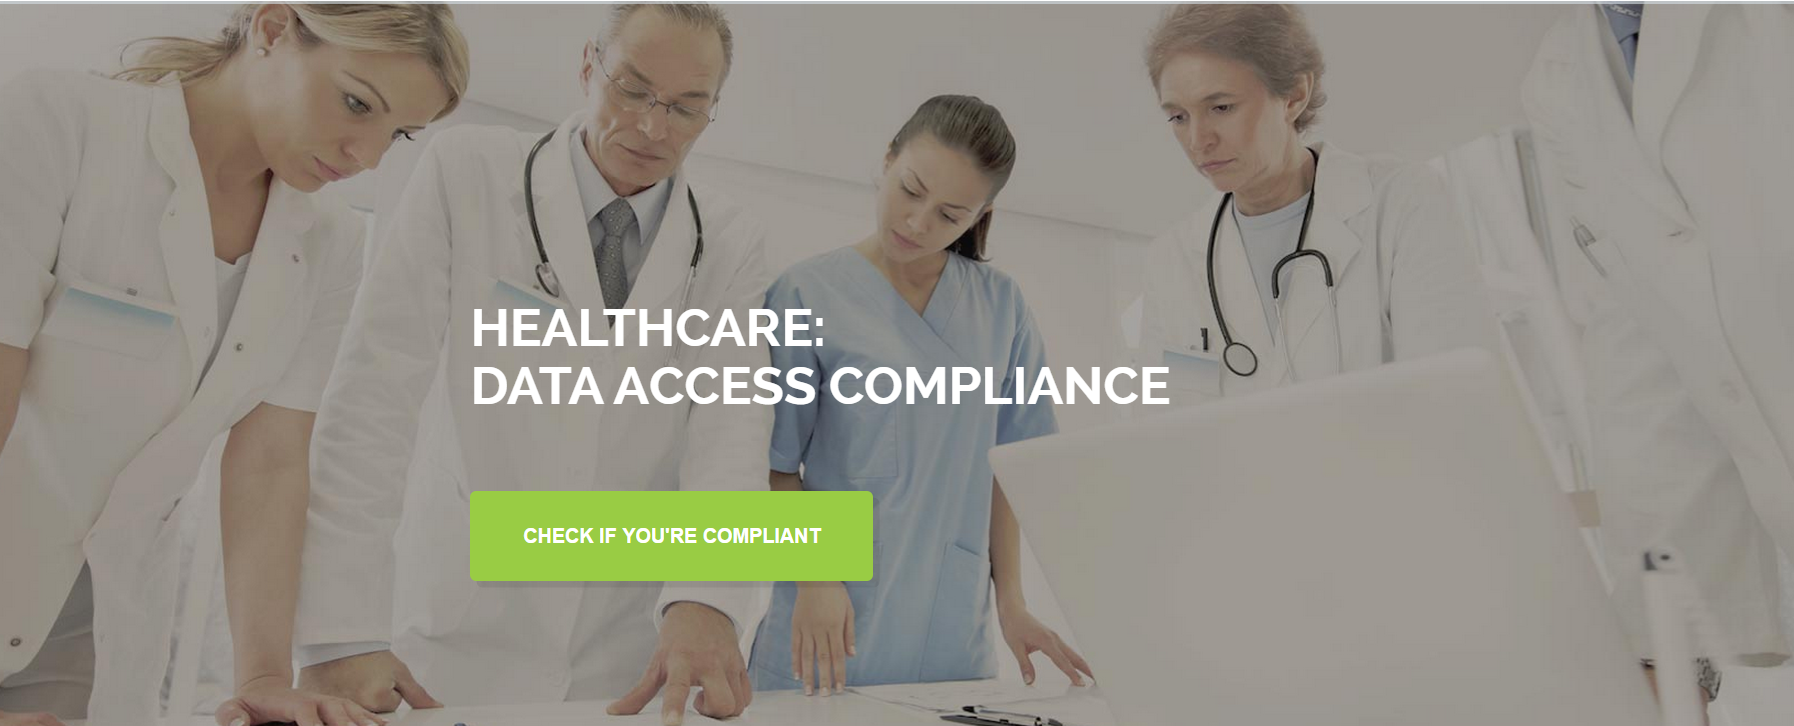 Healthcare Data Access compliance